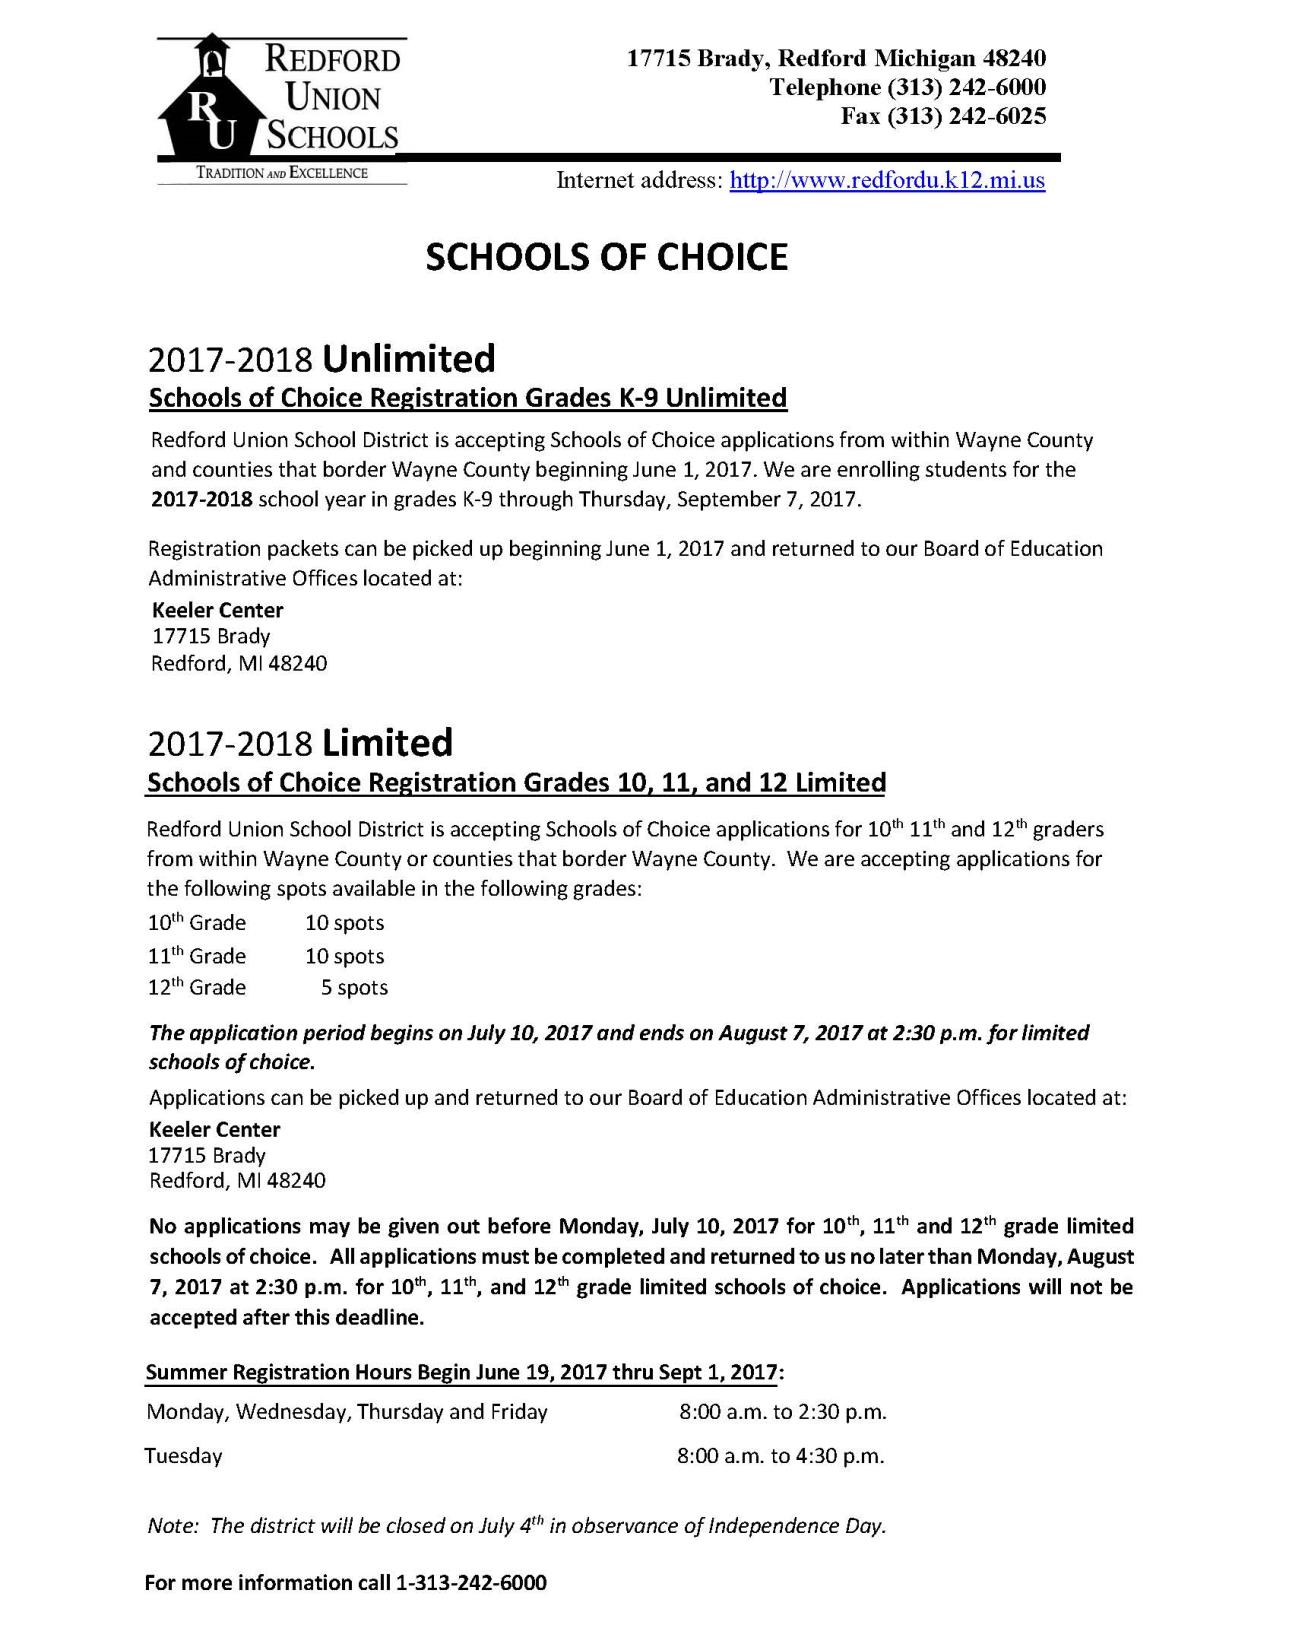 Schools of Choice 2017-18 Registration for Unlimited grades K-9 is June 1, 2017 thru September 7, 2017.  Limited Schools of Choice for grades 10, 11, 12 is July 10, 2017 thru August 7, 2017.  For specific details, please call (313) 242-6003 or click on the link below.